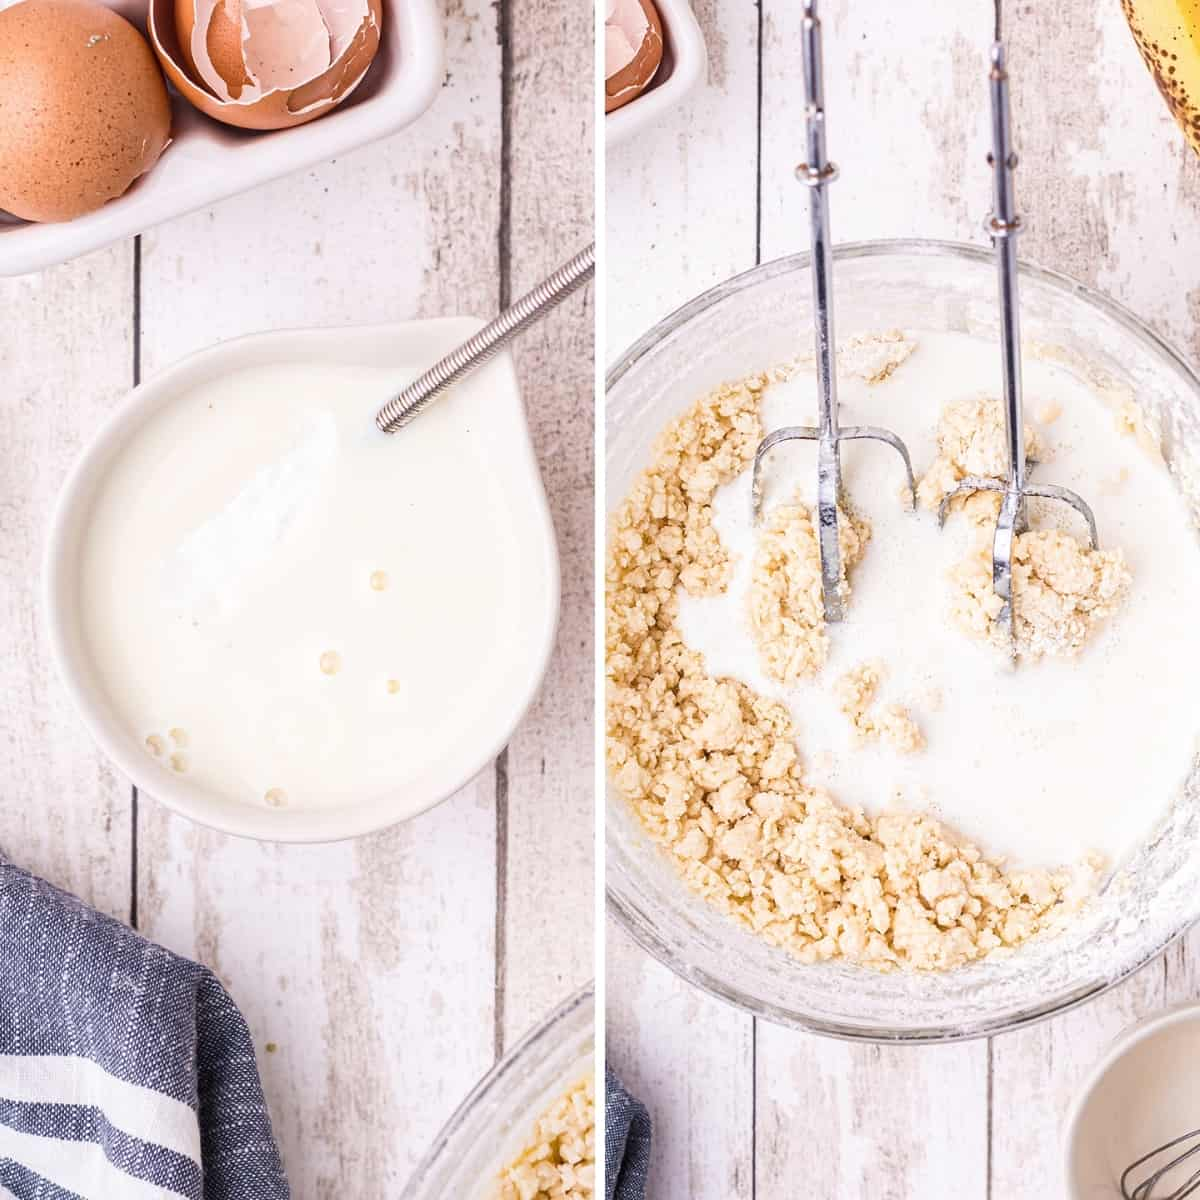 Photo collage showing adding baking soda to buttermilk (left) and combining the buttermilk with the flour, sugar, and eggs (right).